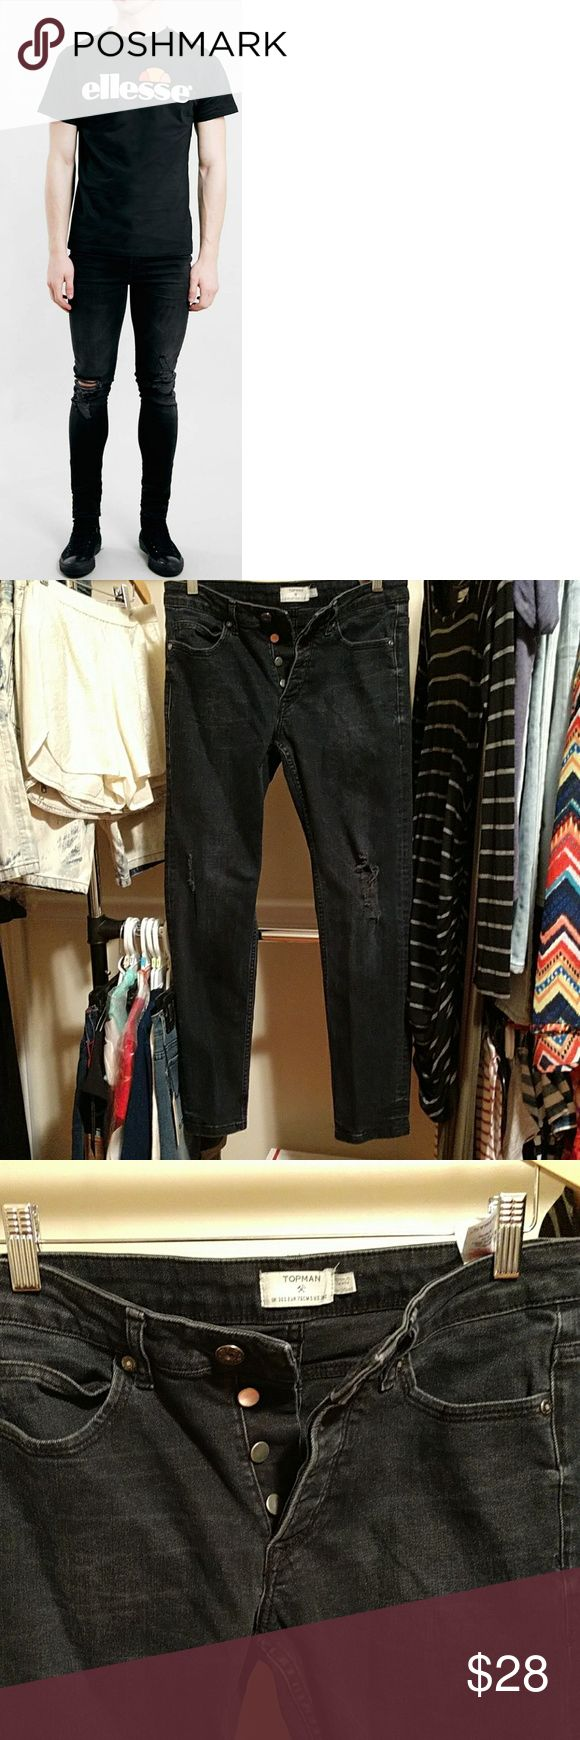 Topman Skinny Jeans in great shape. These jeans are are in great shape. No holes. No stains. The jeans are black. Size is 30S. Have questions. I'm here. Topman Jeans Skinny